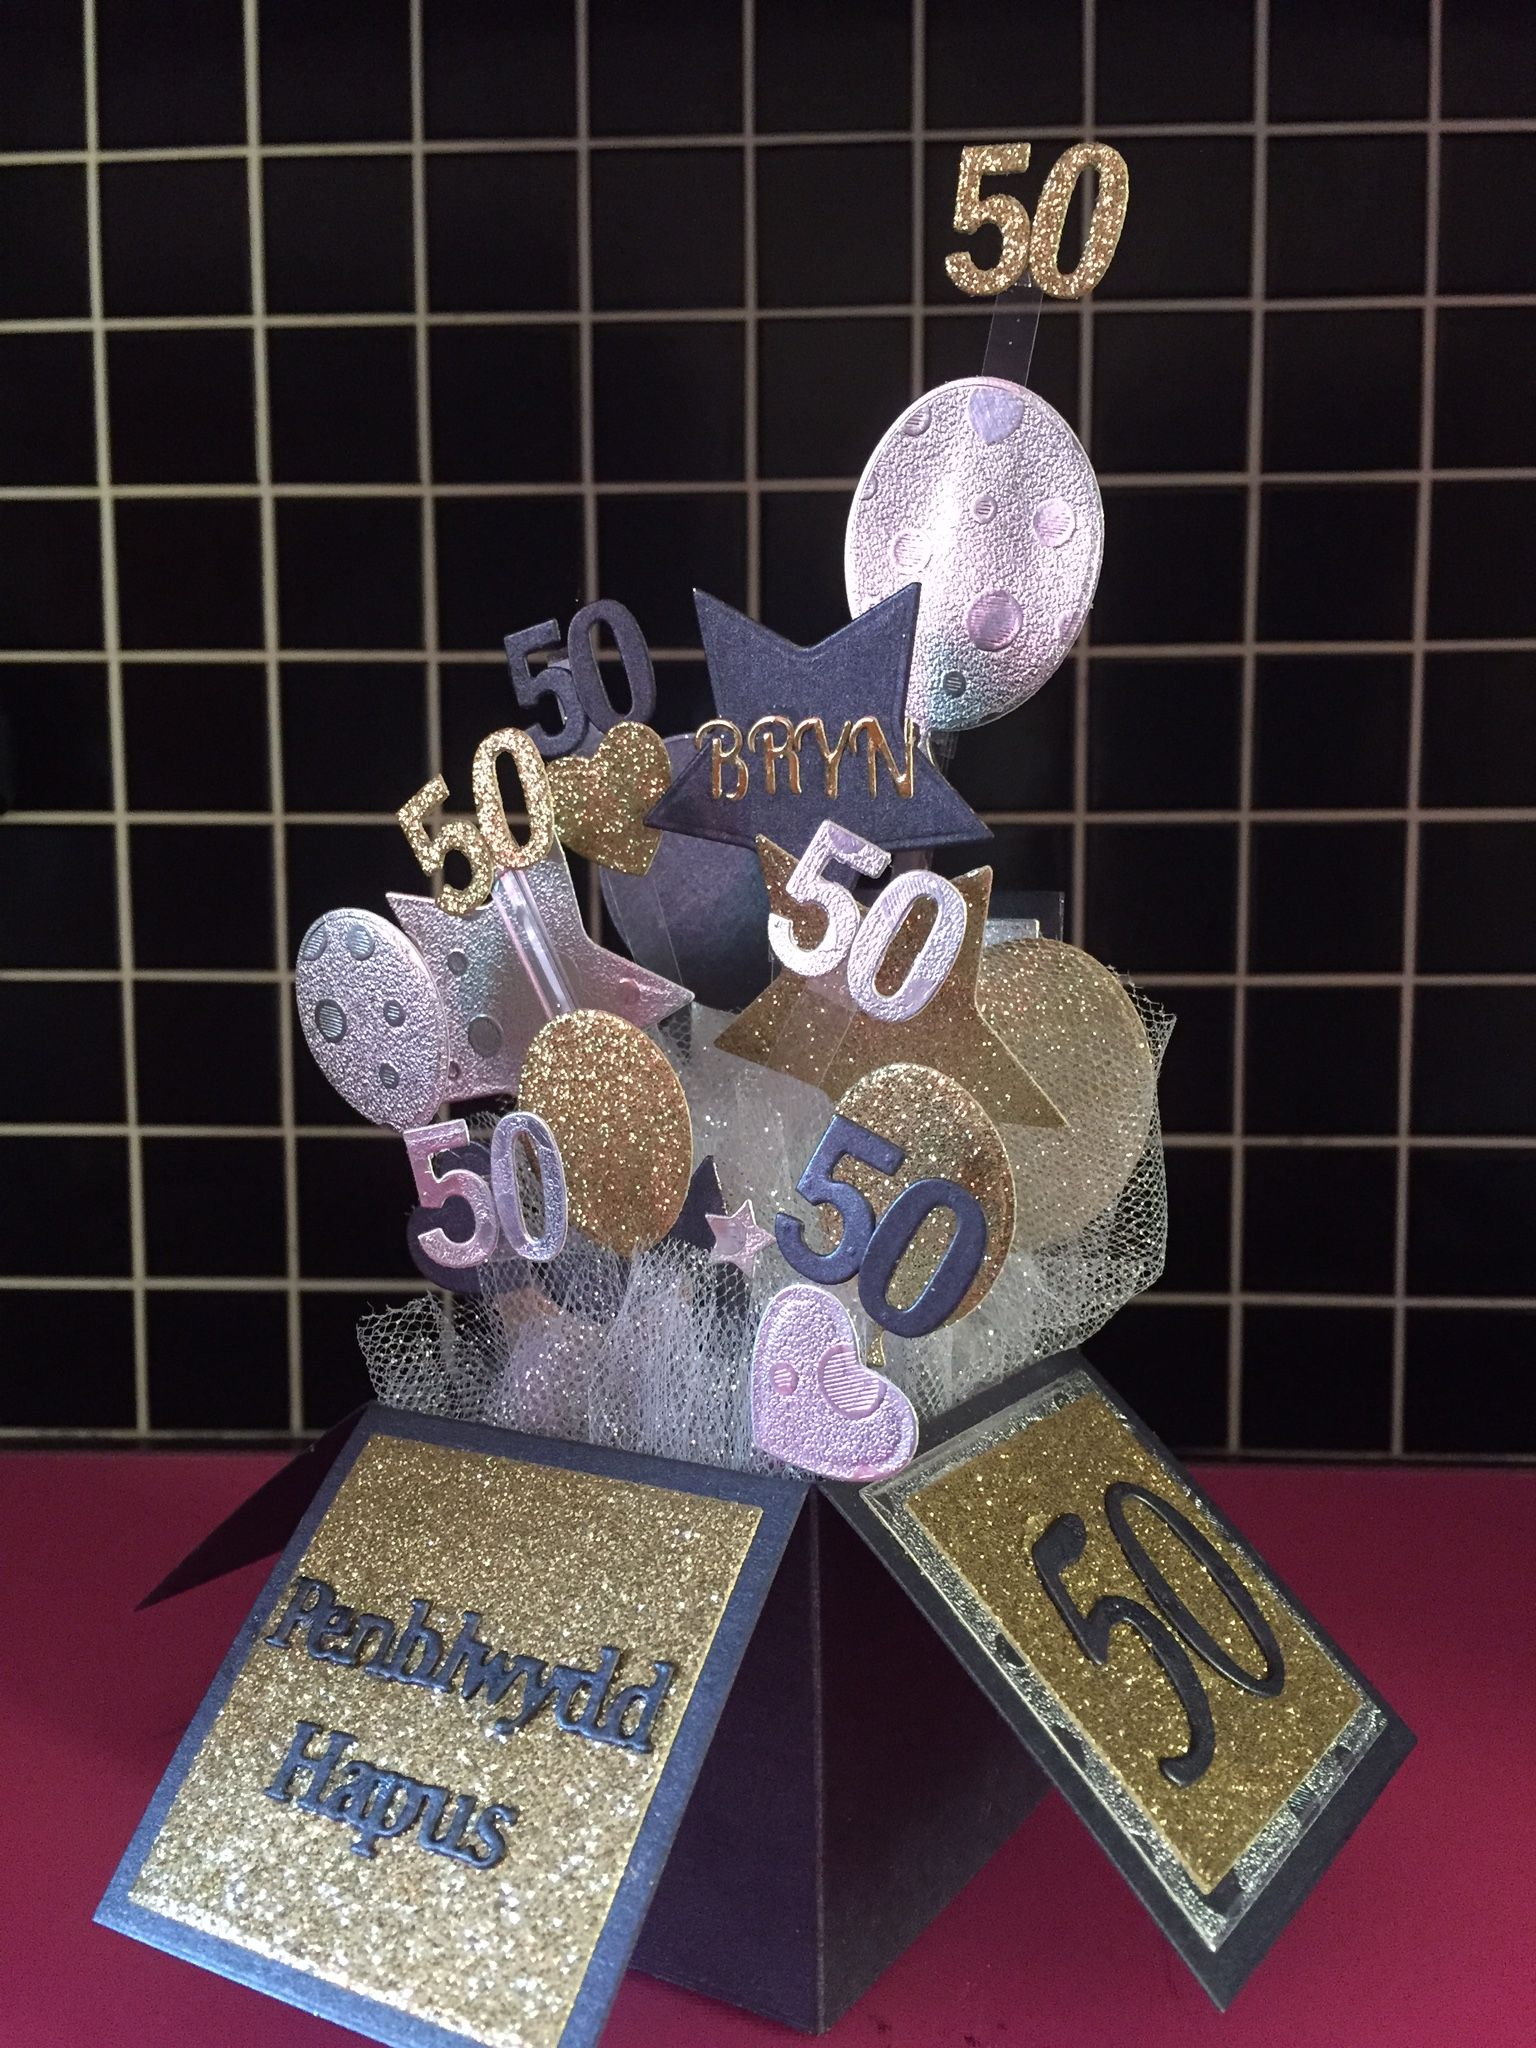 Tattered Lace Pop Up Box Die Set Welsh Sentiments Alphabet Numbers Dies Used To Make This Male 5 Exploding Box Card 50th Birthday Cards Cool Birthday Cards